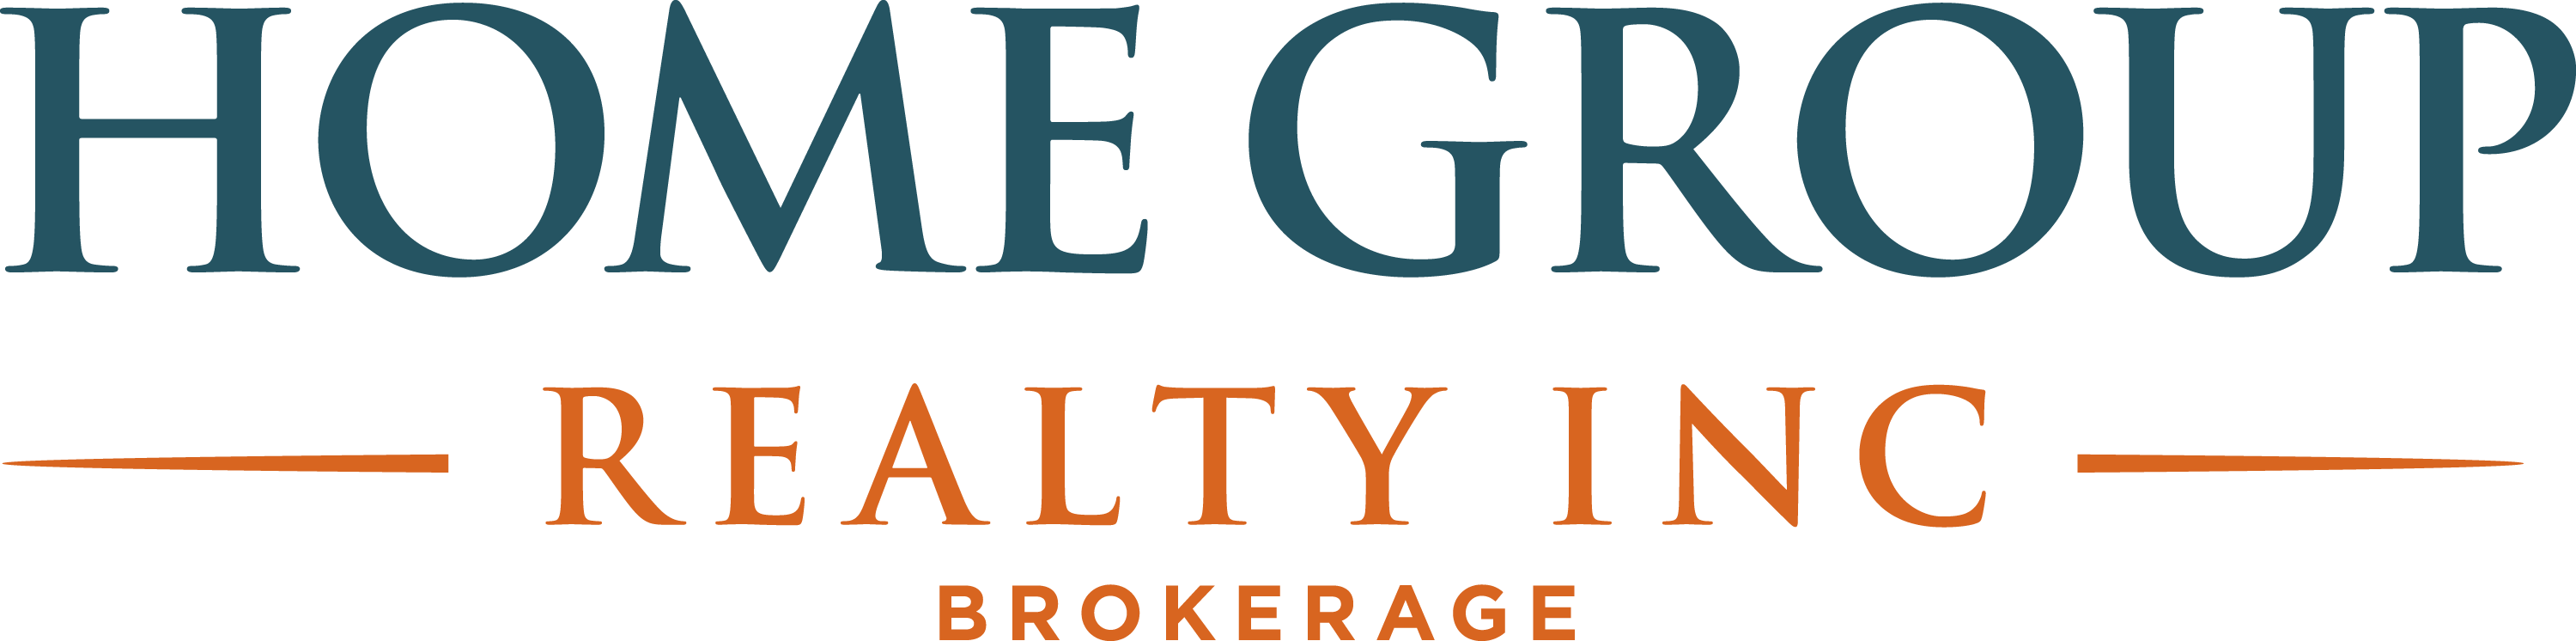 Home Group Realty Inc.